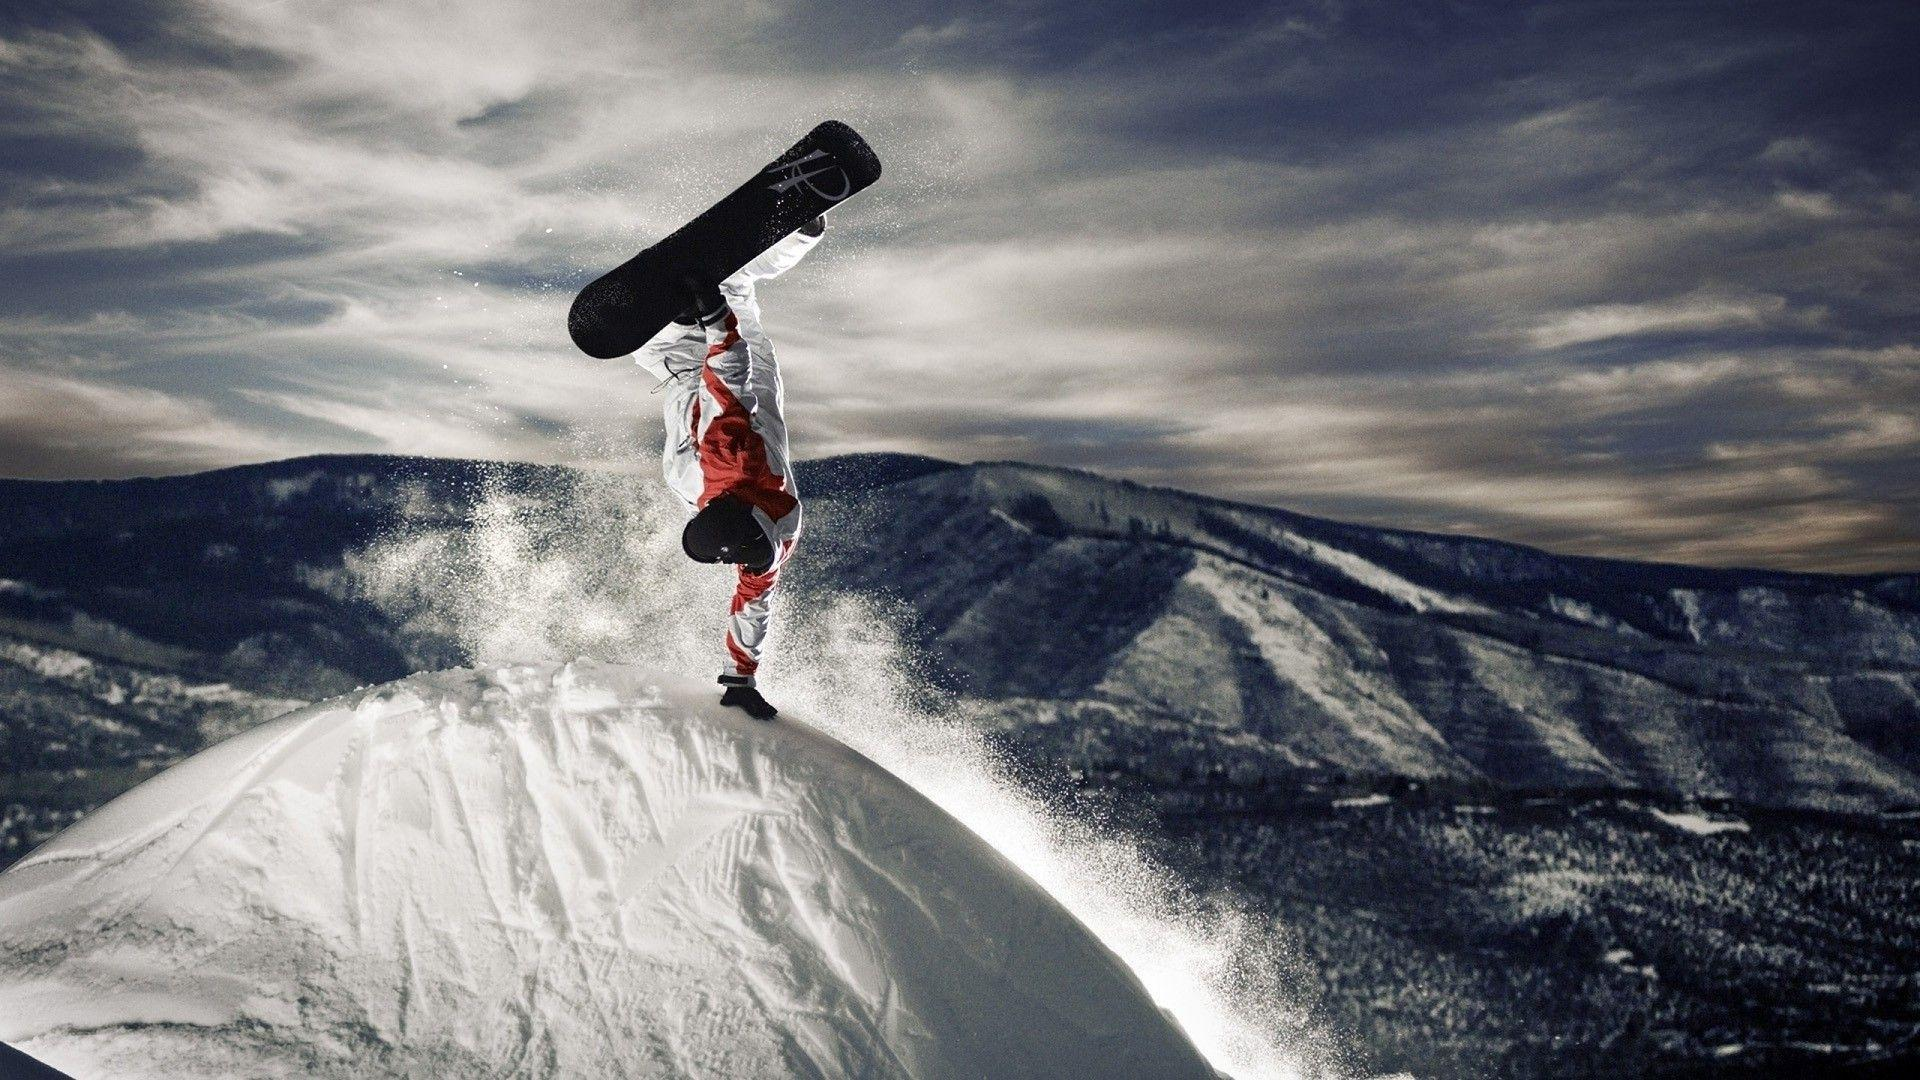 Extreme snowboarding Wallpaper #